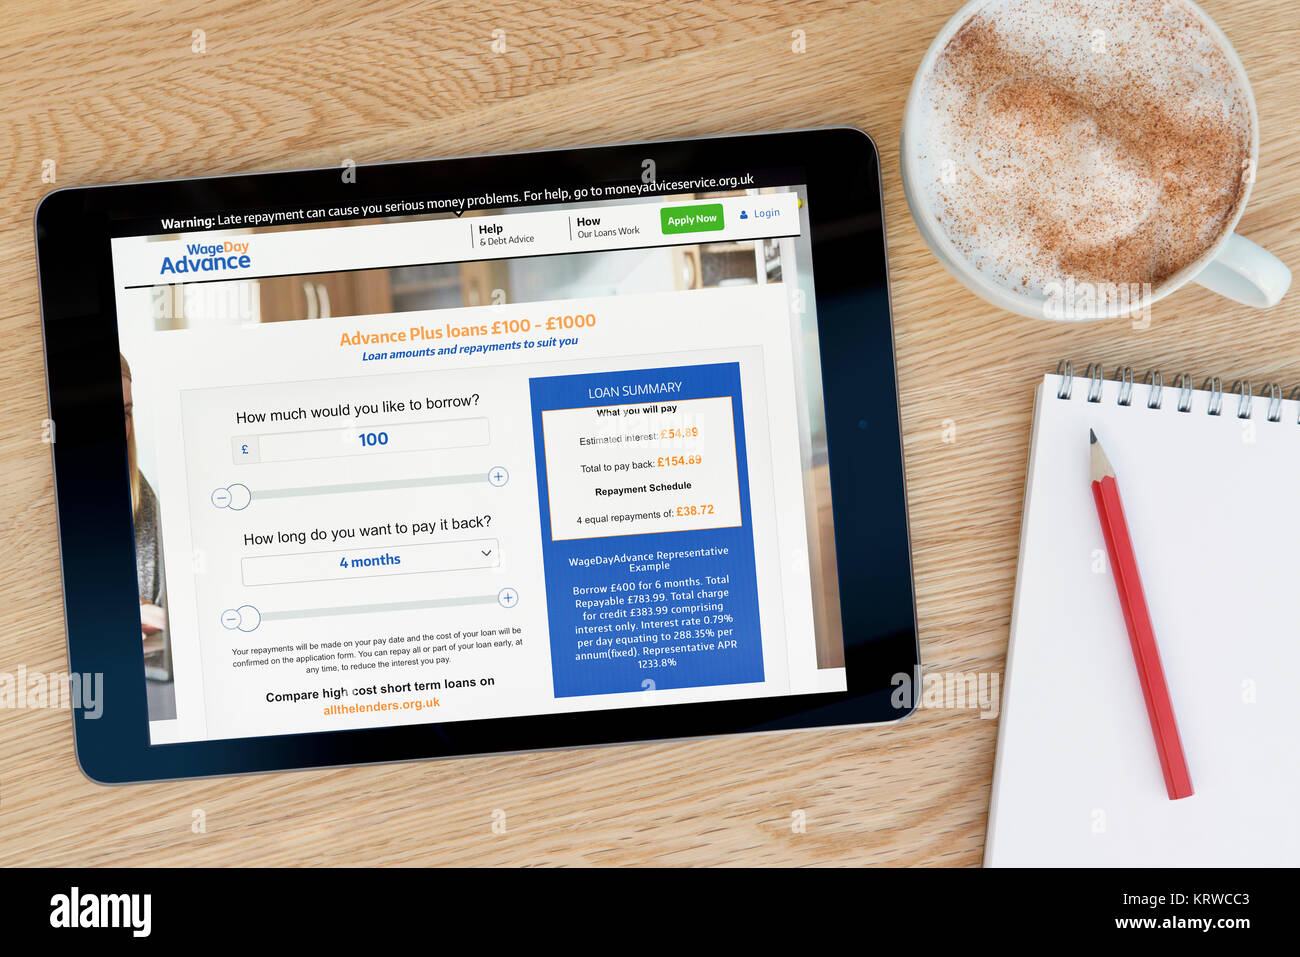 The Wage Day Advance website on an iPad tablet device which rests on a wooden table beside a notepad and pencil - Stock Image